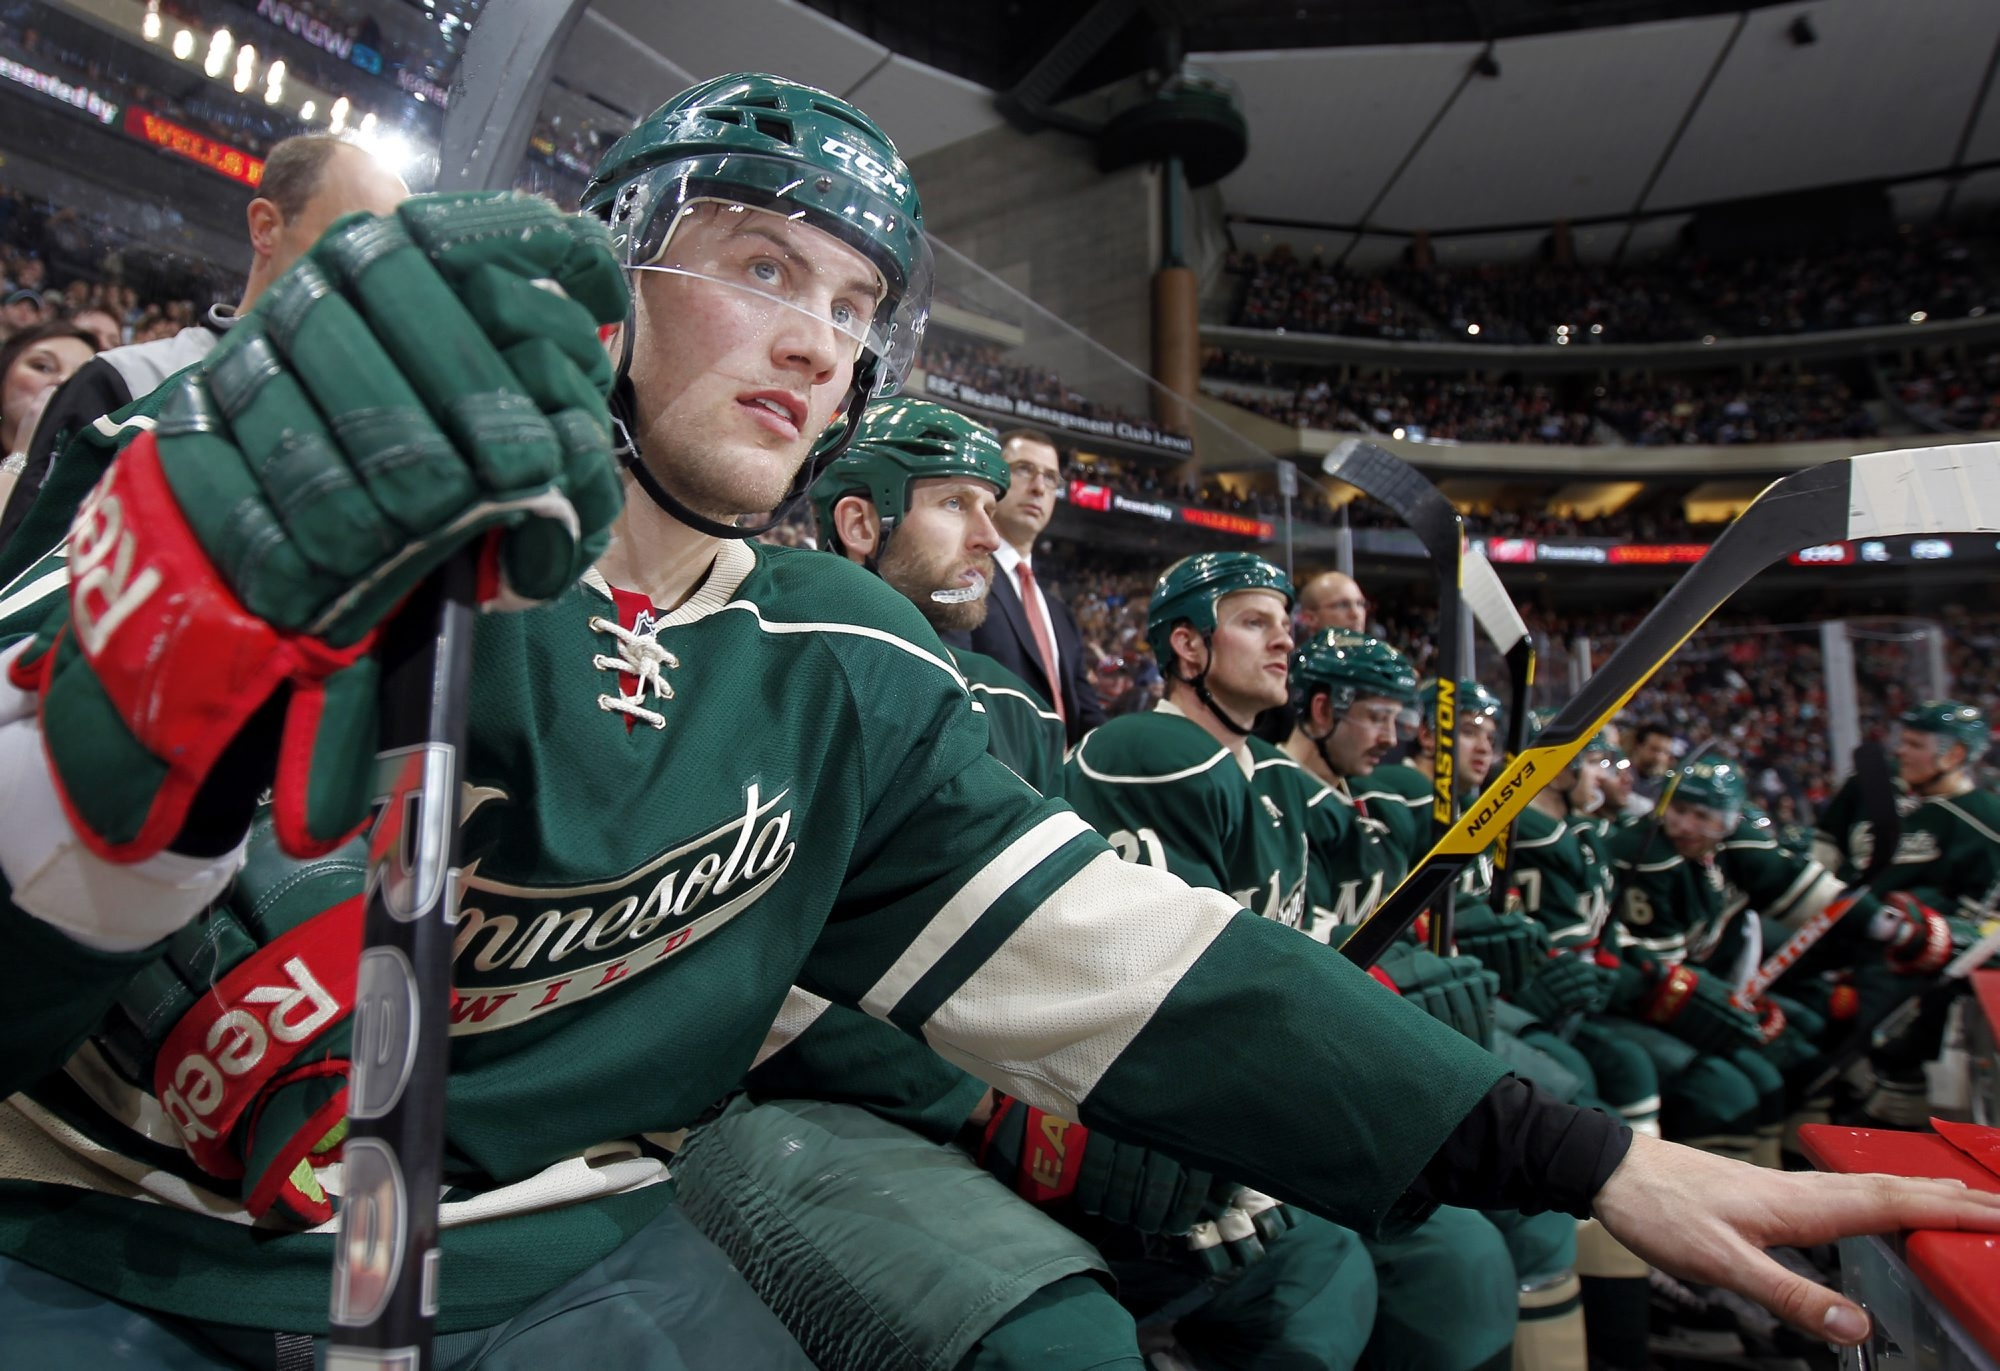 Minnesota Wild rookie Johan Larsson (47) sits on the bench in the third period against the Detroit Red Wings at the Xcel Energy Center in St. Paul, Minnesota, Sunday, February 17, 2013. The Wild defeated the Red Wings, 3-2. (Carlos Gonzalez/Minneapolis Star Tribune/MCT) ORG XMIT: 1135059 ORG XMIT: MIN1302172045293946